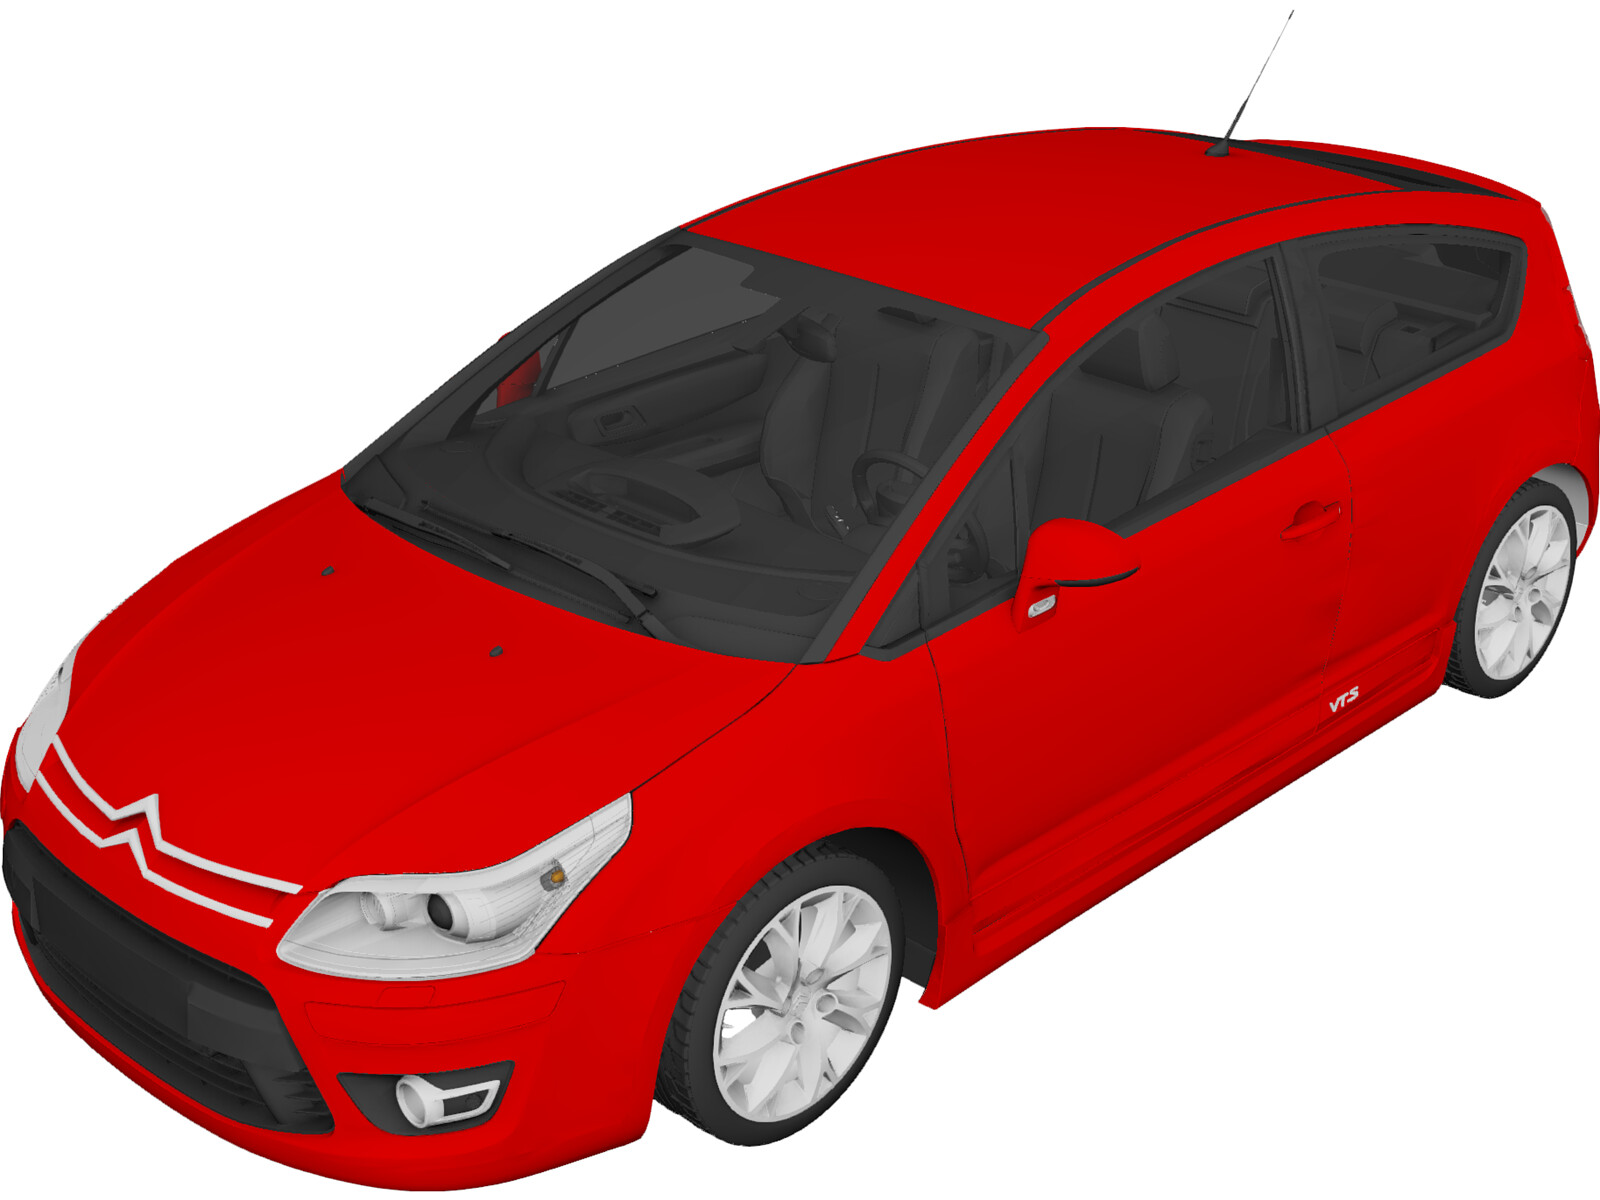 Citroen C4 VTS Coupe (2009)